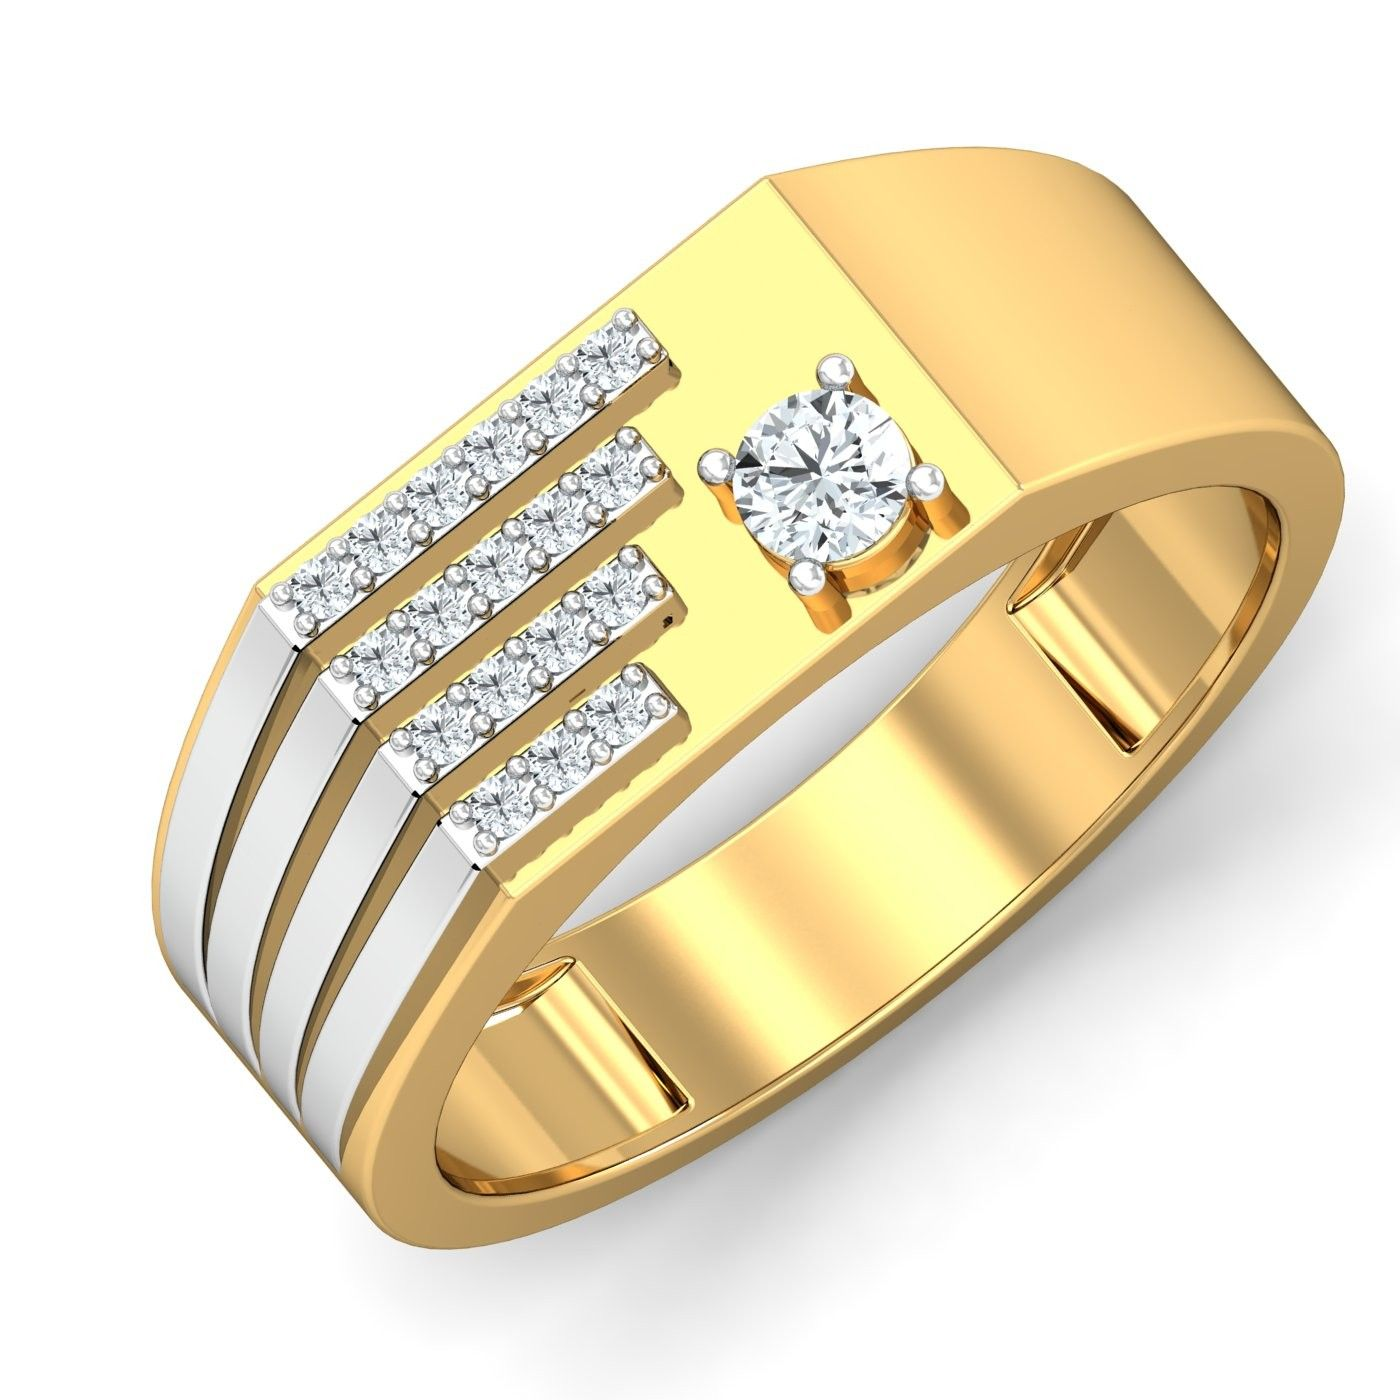 engagement in jewellery ring gold jewelry diamondland white rings diamond